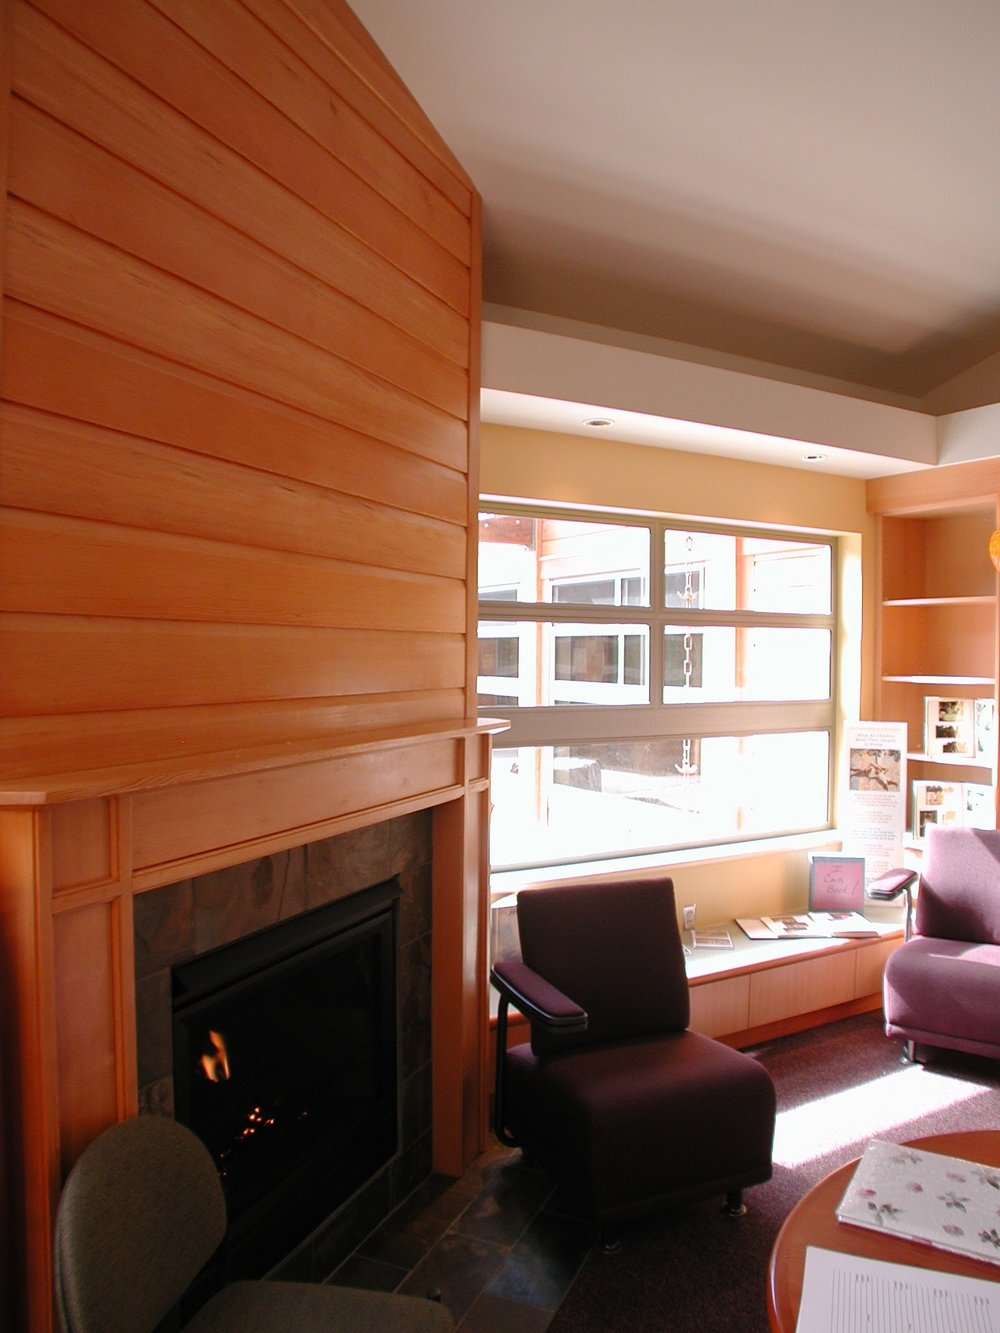 Highline_FamilyResource_Fireplace.jpg